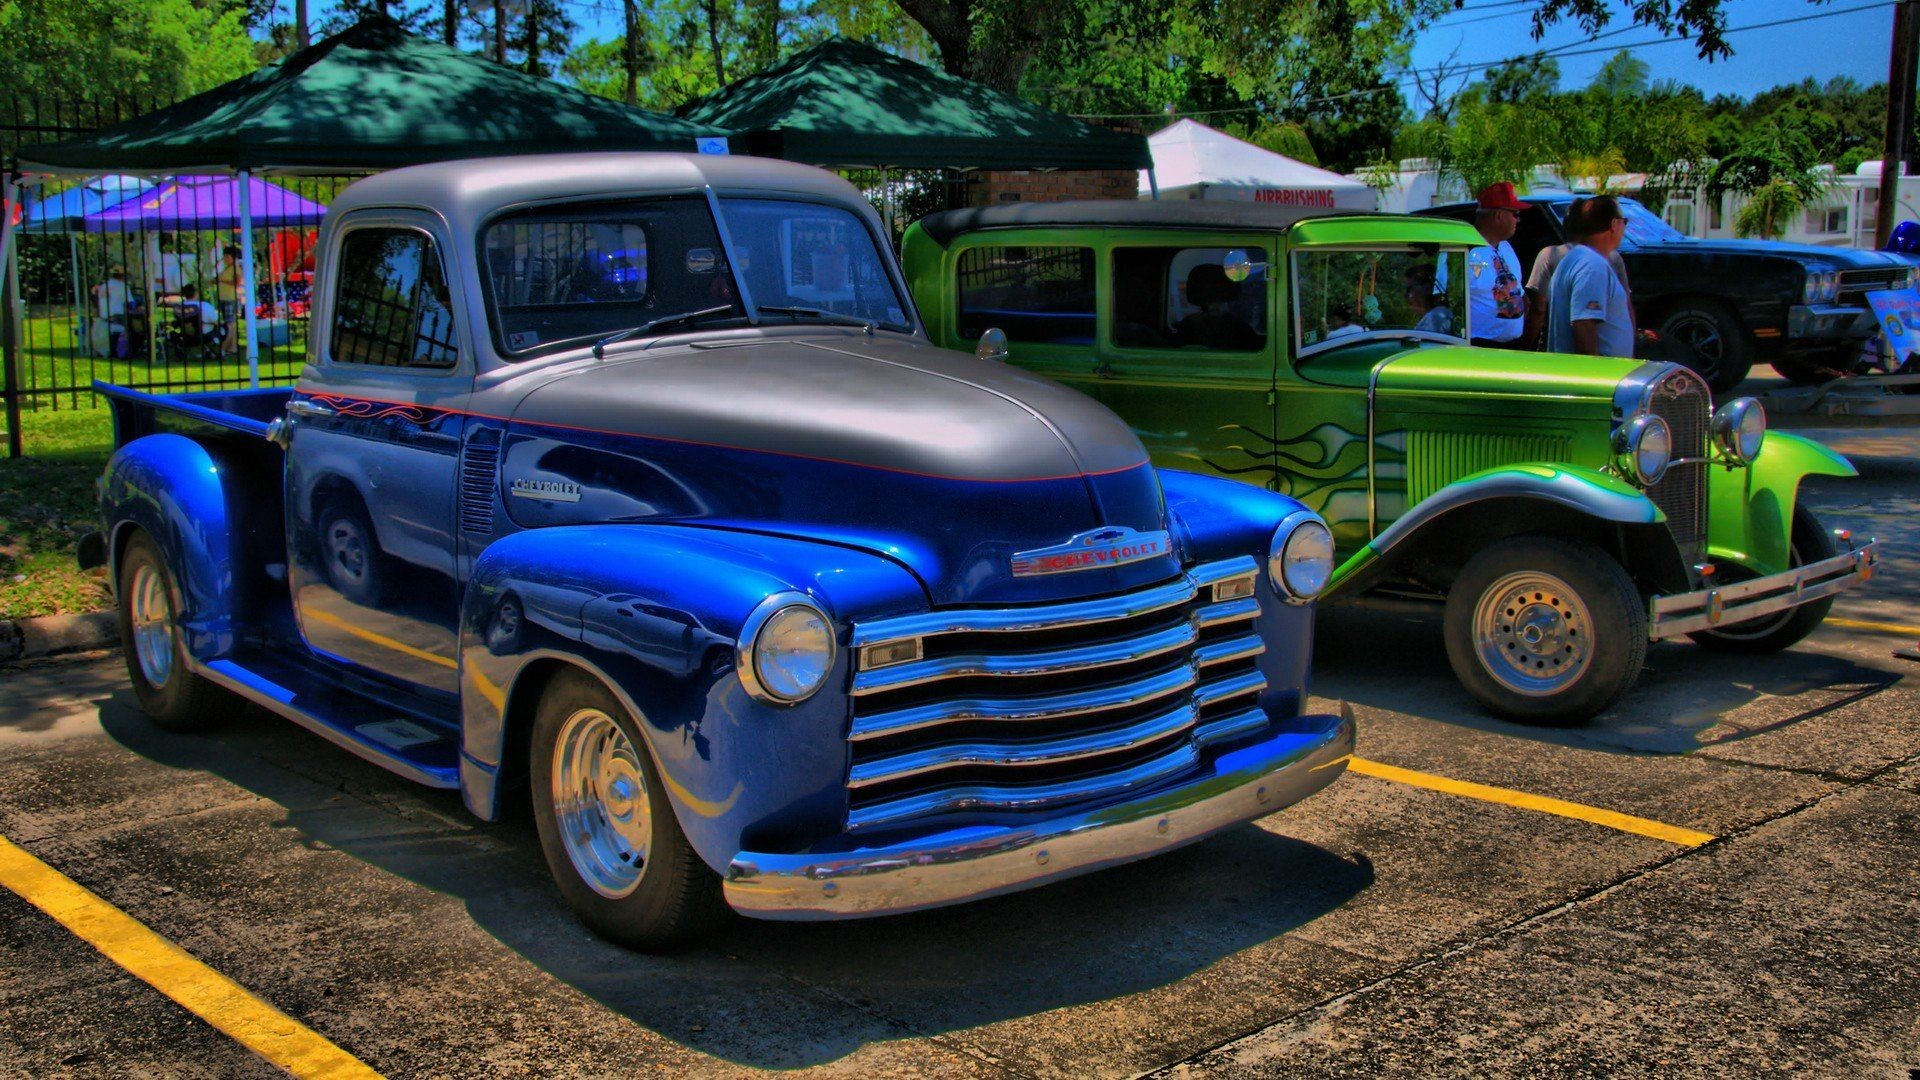 Vintage Chevy Truck Wallpaper Chevrolet Johnywheels Hot Classic Chevy Trucks 1920x1080 Download Hd Wallpaper Wallpapertip